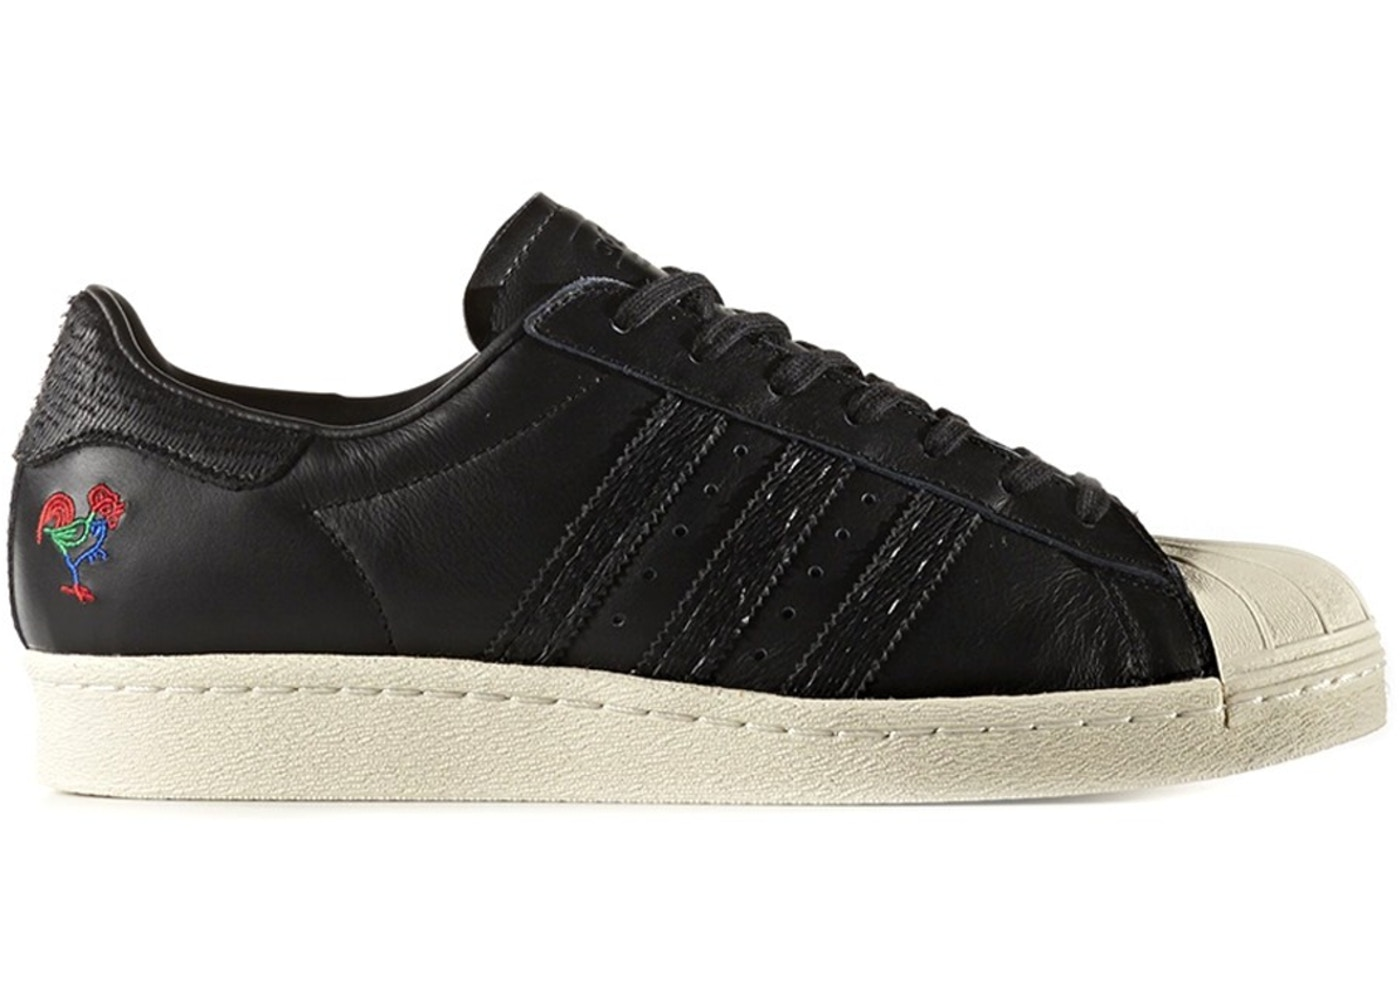 quality design 9f533 23197 adidas Superstar 80s Chinese New Year